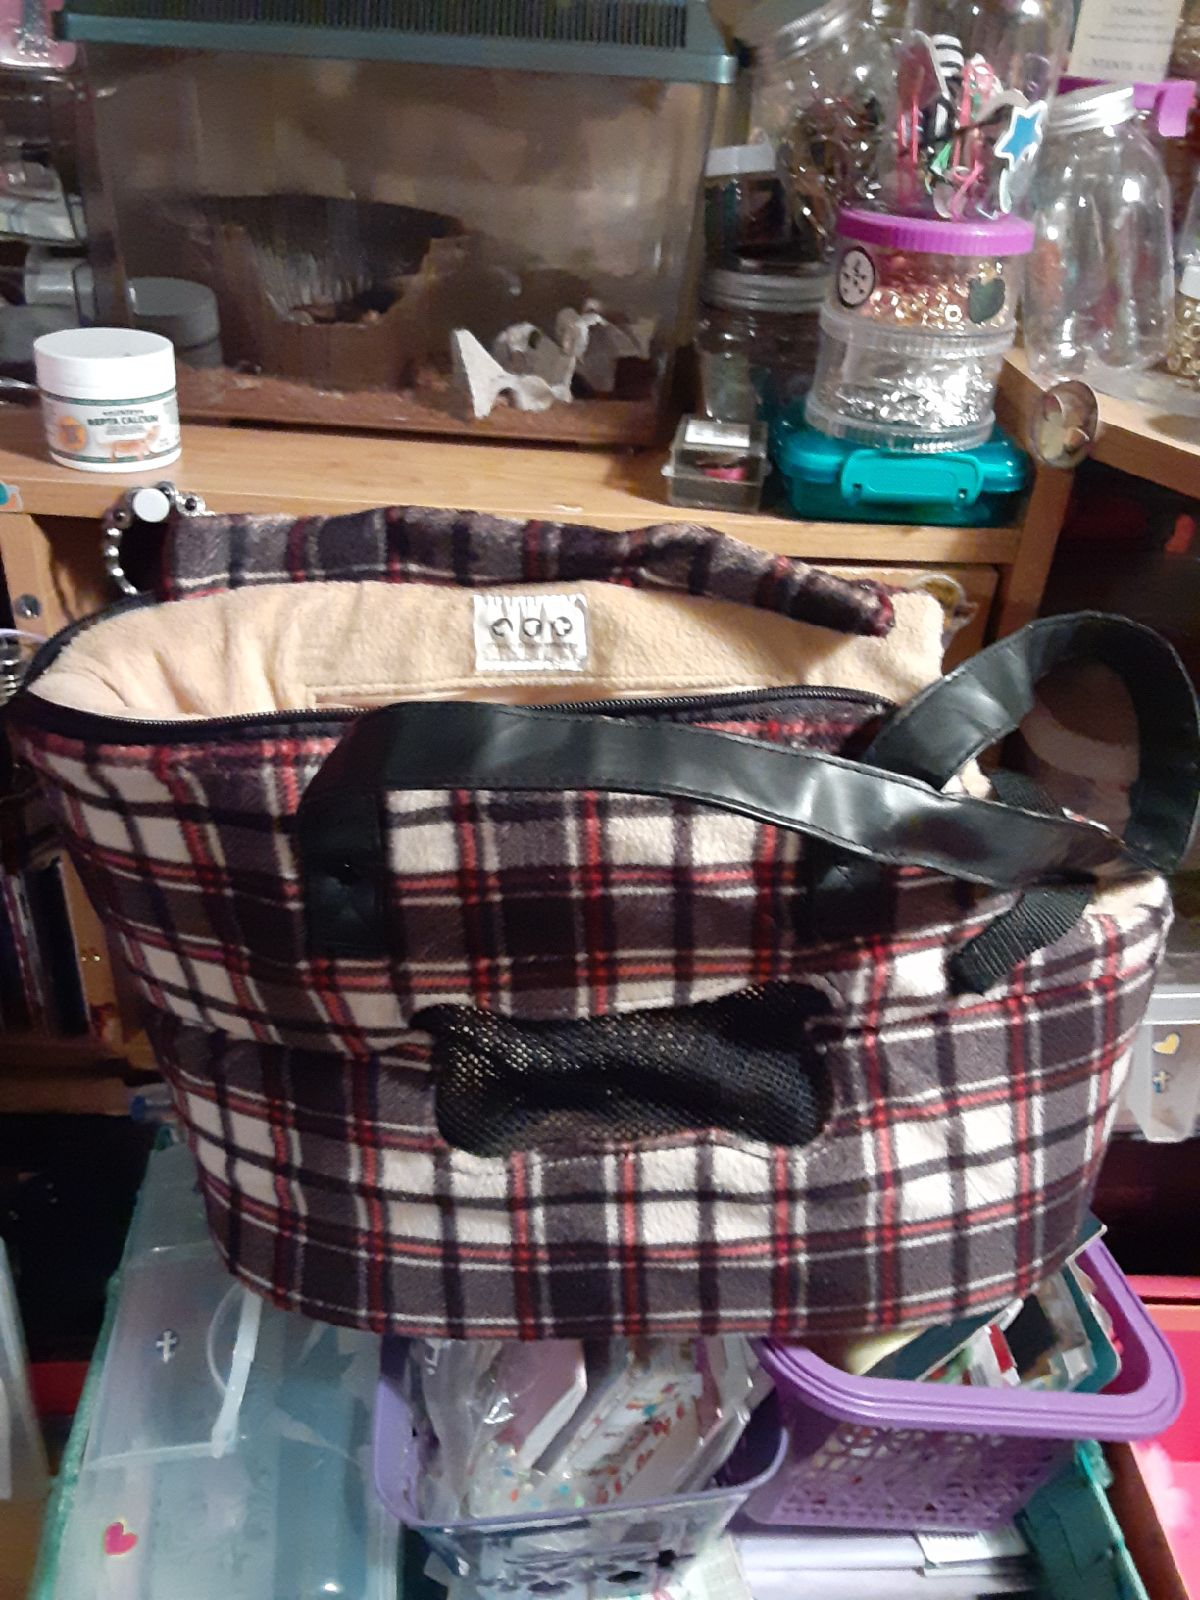 Manhattan mutts dog carrying bag for sma